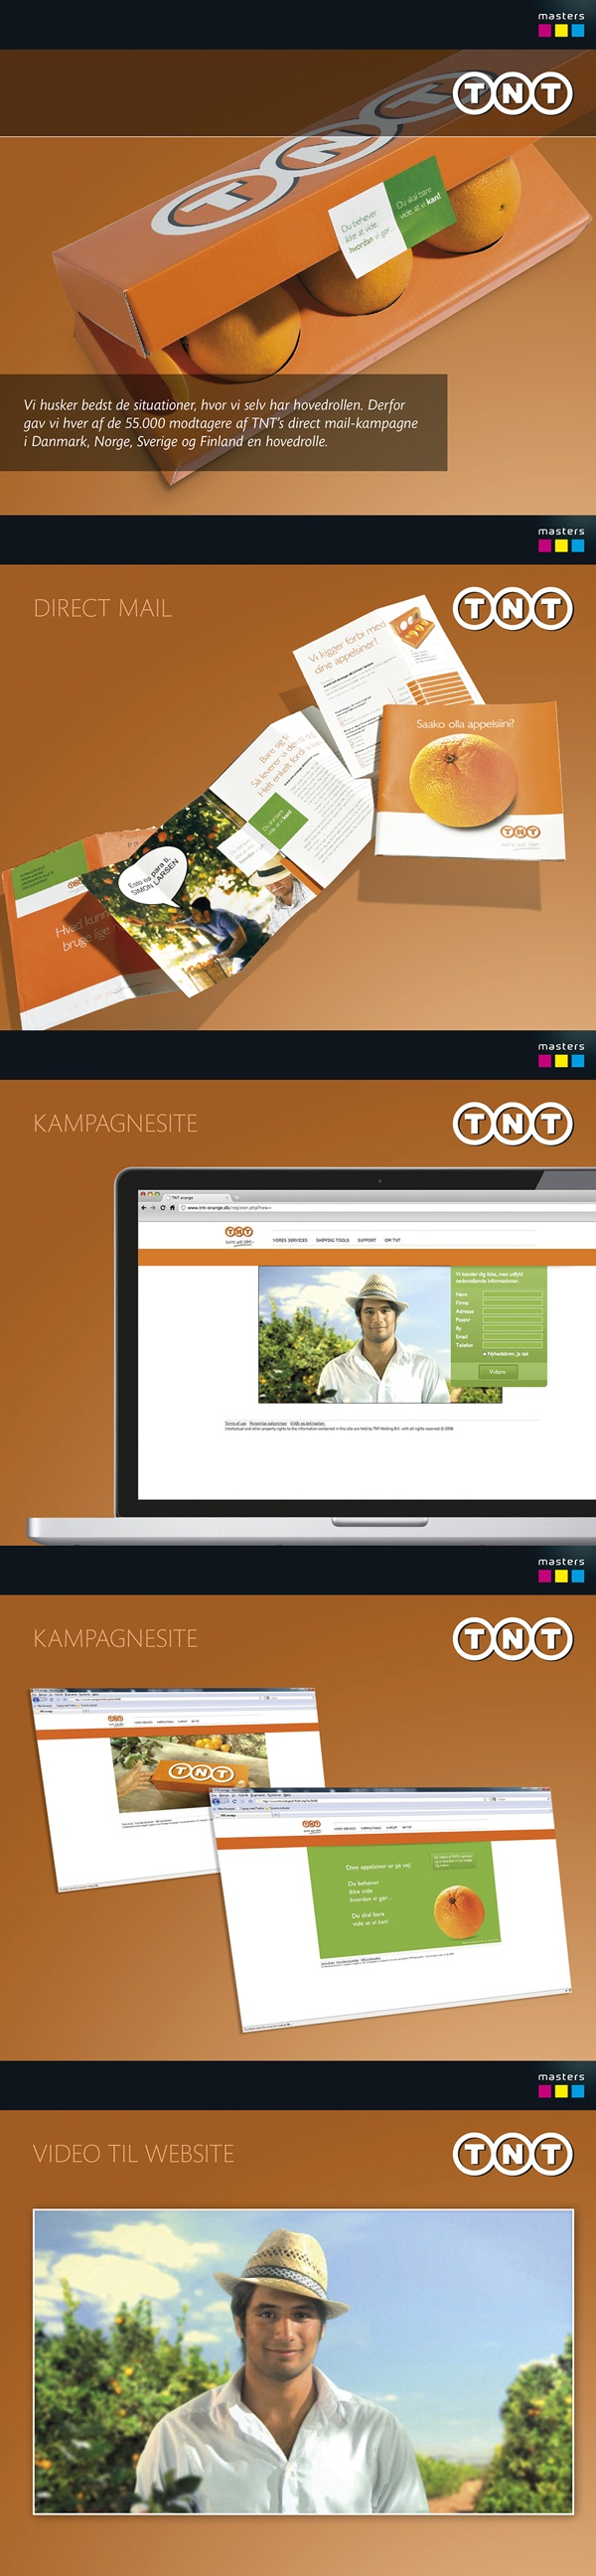 TNT - Kampagne med PURL by Masters Reklame, via Behance #mastersreklame